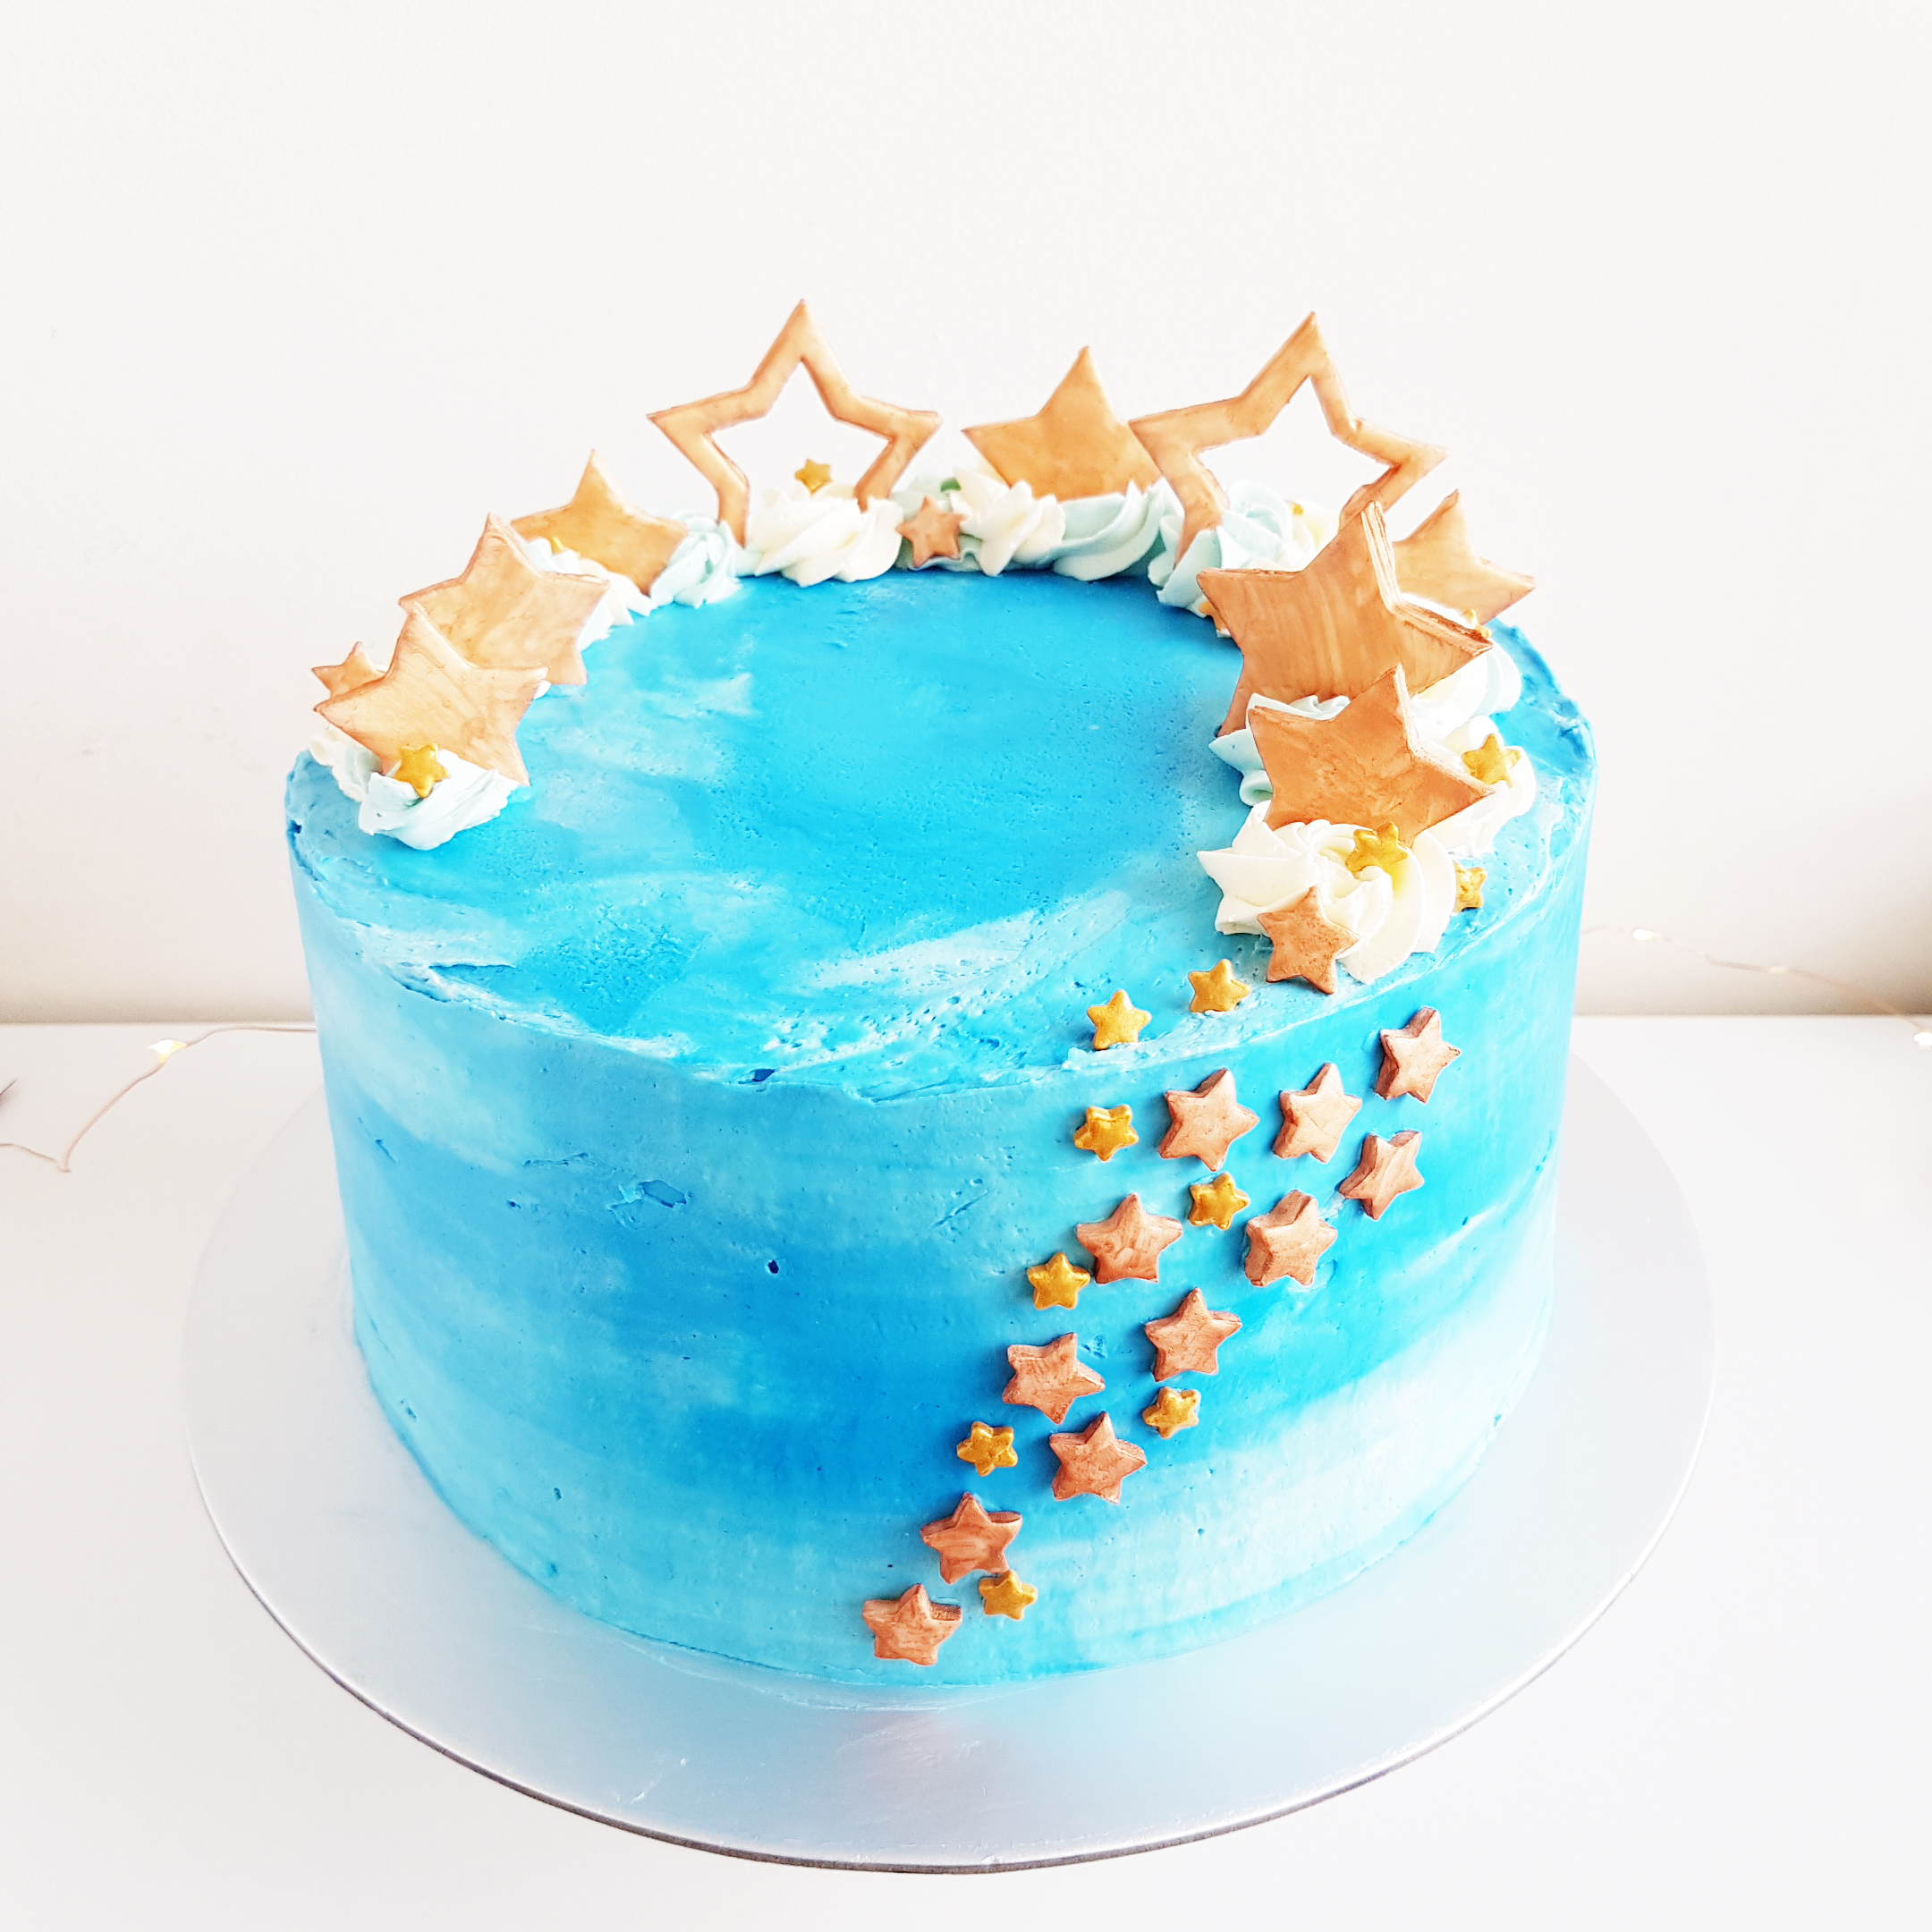 Starry Cake by The Baking Experiment